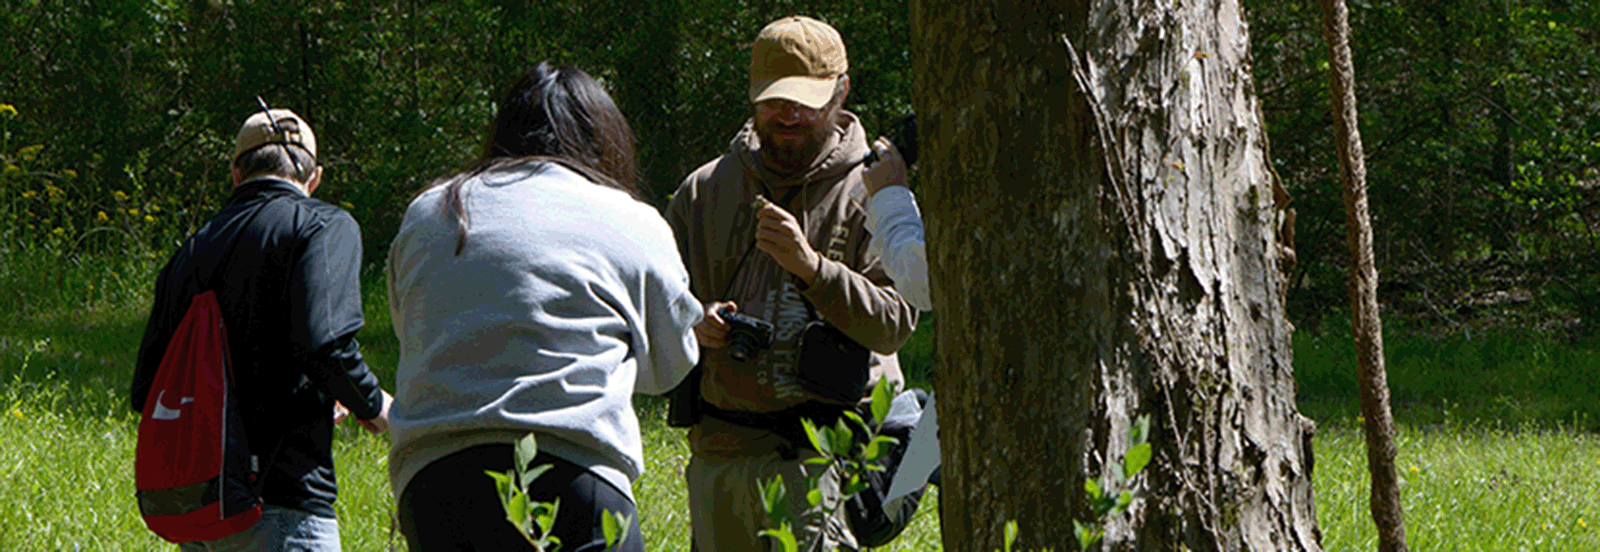 BioBlitz organizer, and TN Geographic Alliance consultant, Jonathan Carpenter, assists citizen scientists photograph and identify organisms for the BioBlitz.